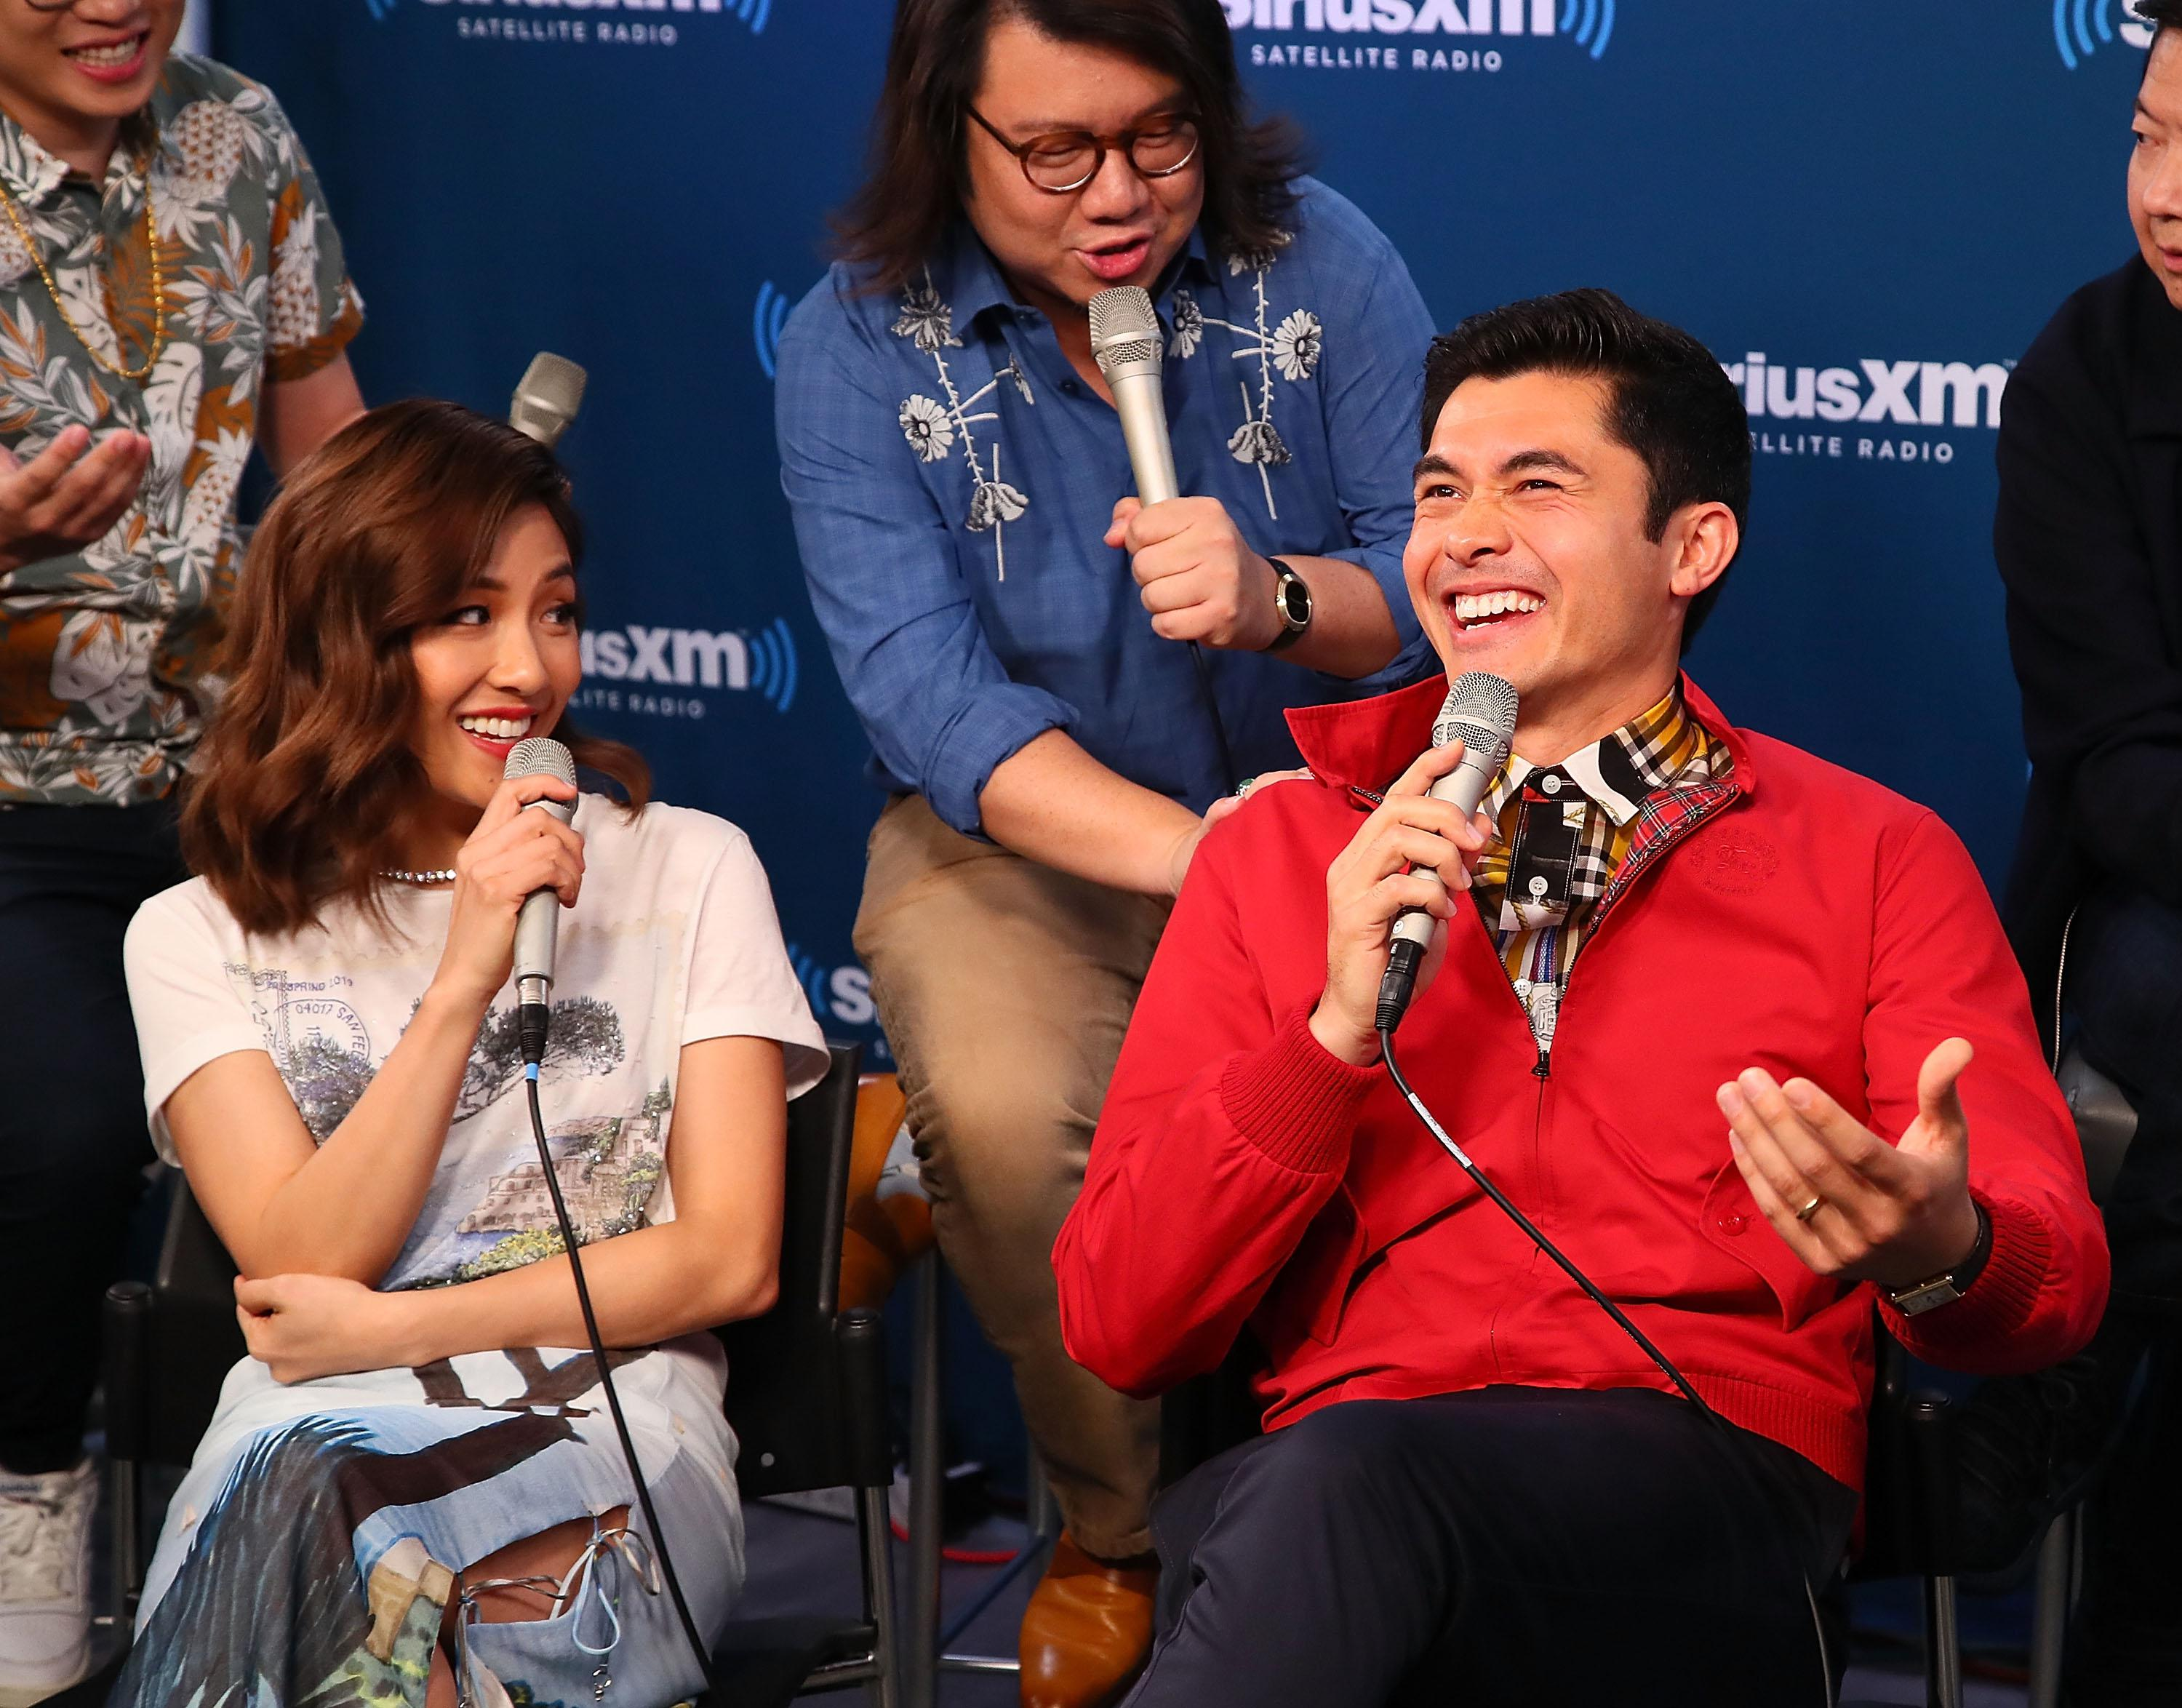 The cast of Crazy Rich Asians talks into microphones for a radio show.